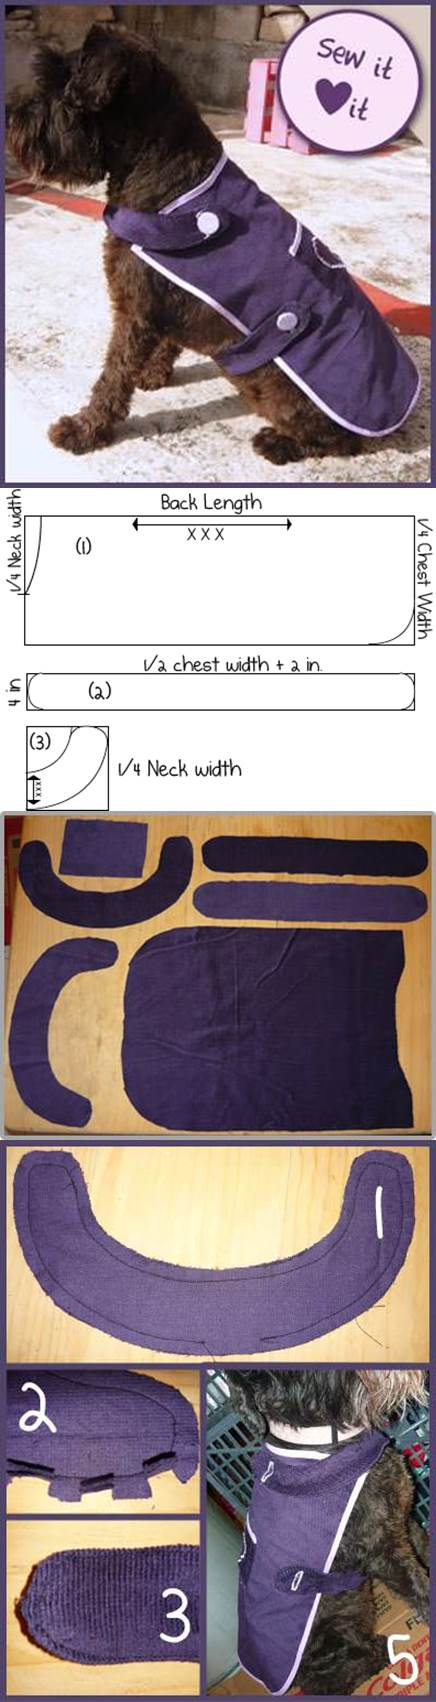 DIY easy sew dog coat 2